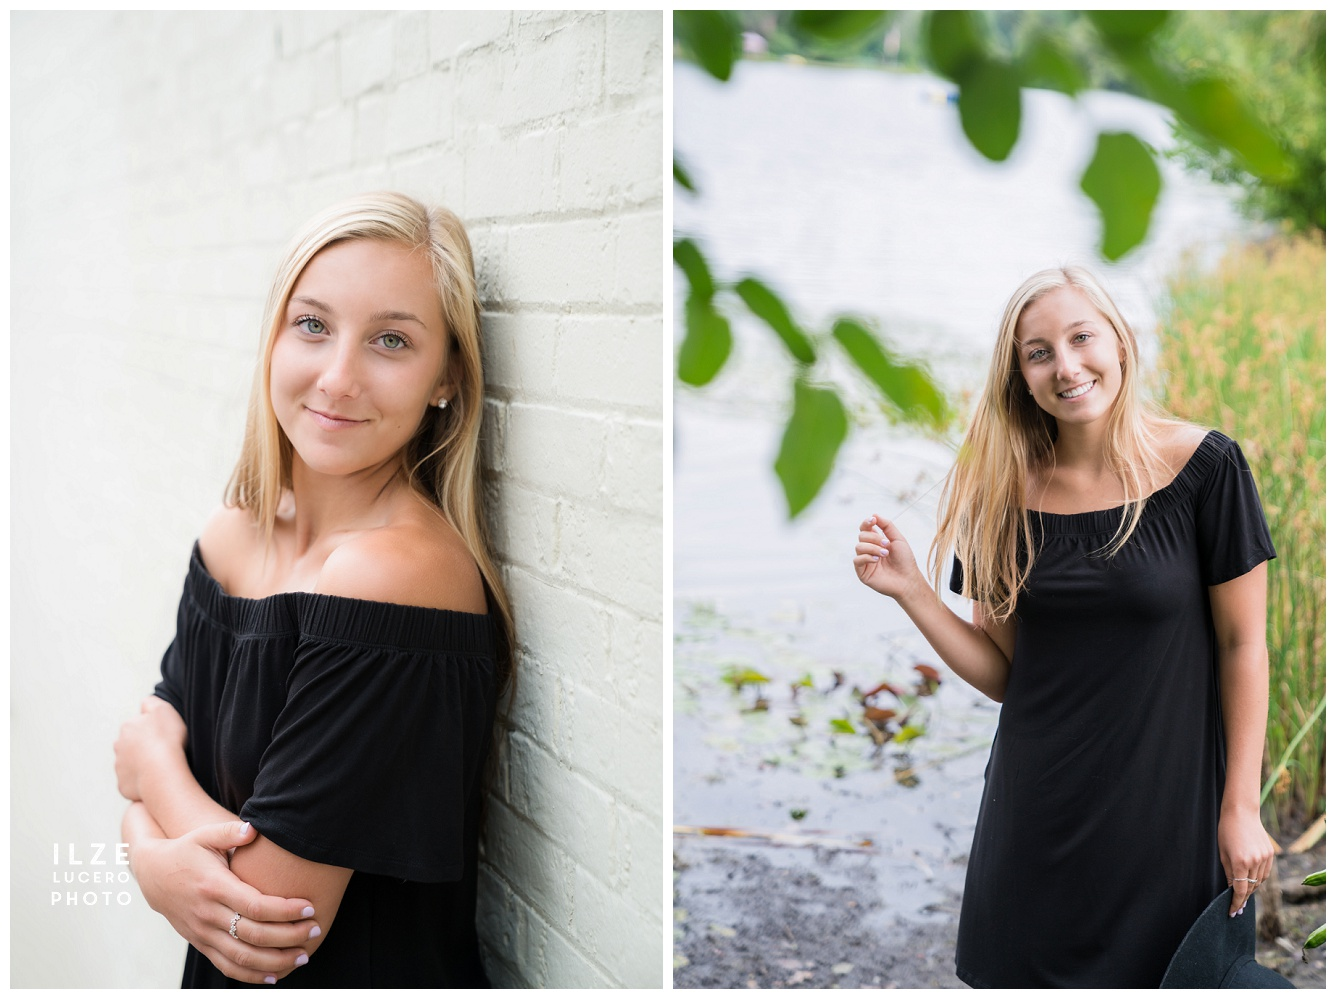 Senior Photo Shoot Clarkston Mill Pond